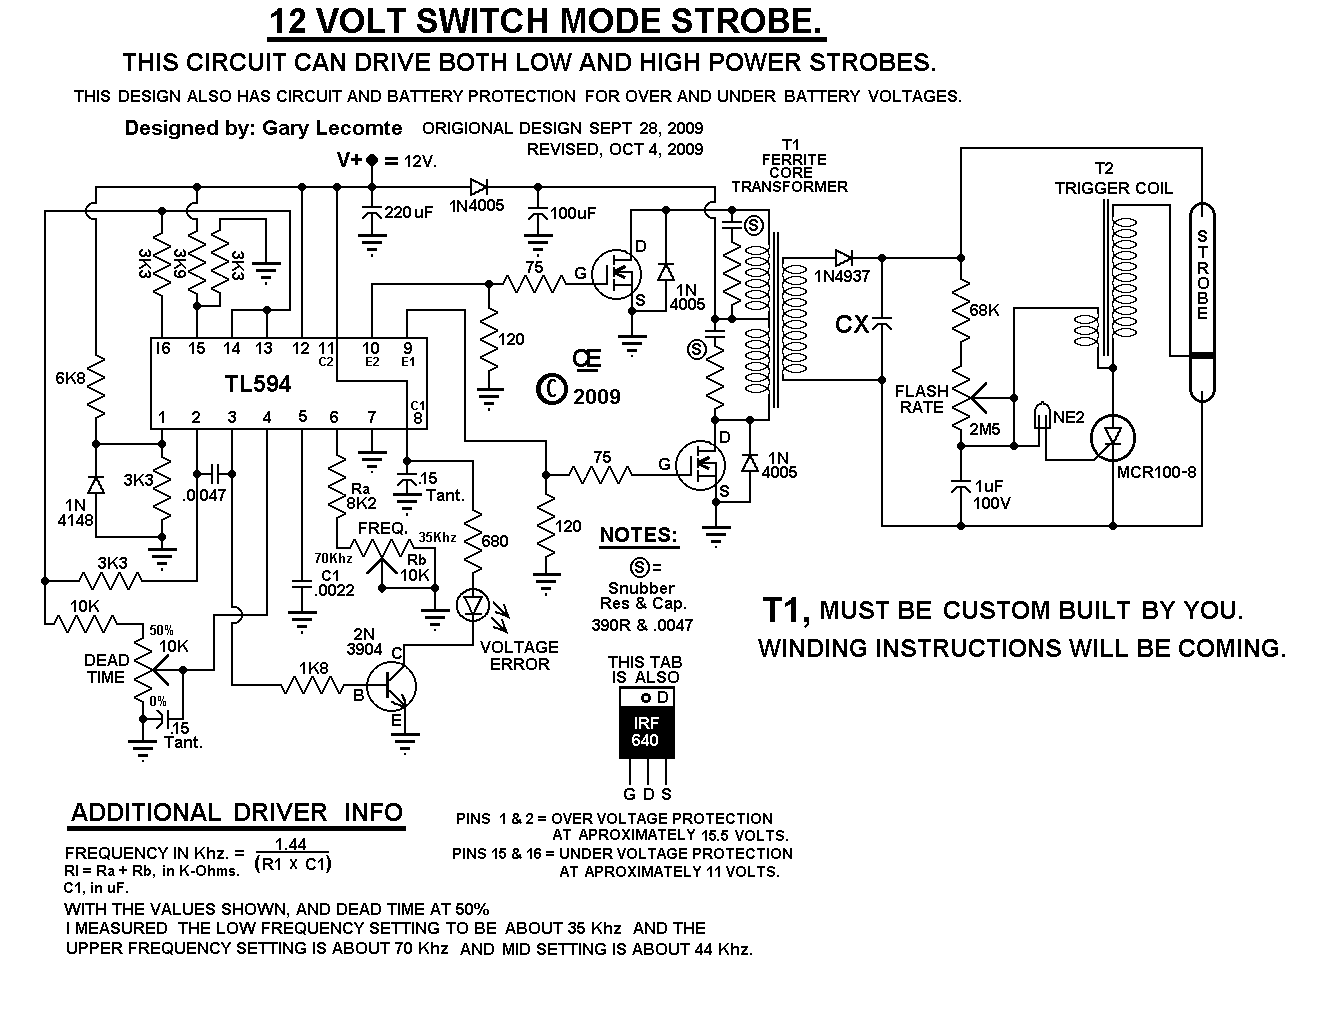 Whelen Power Supply Wiring Diagram : Strobe power supply wiring diagram